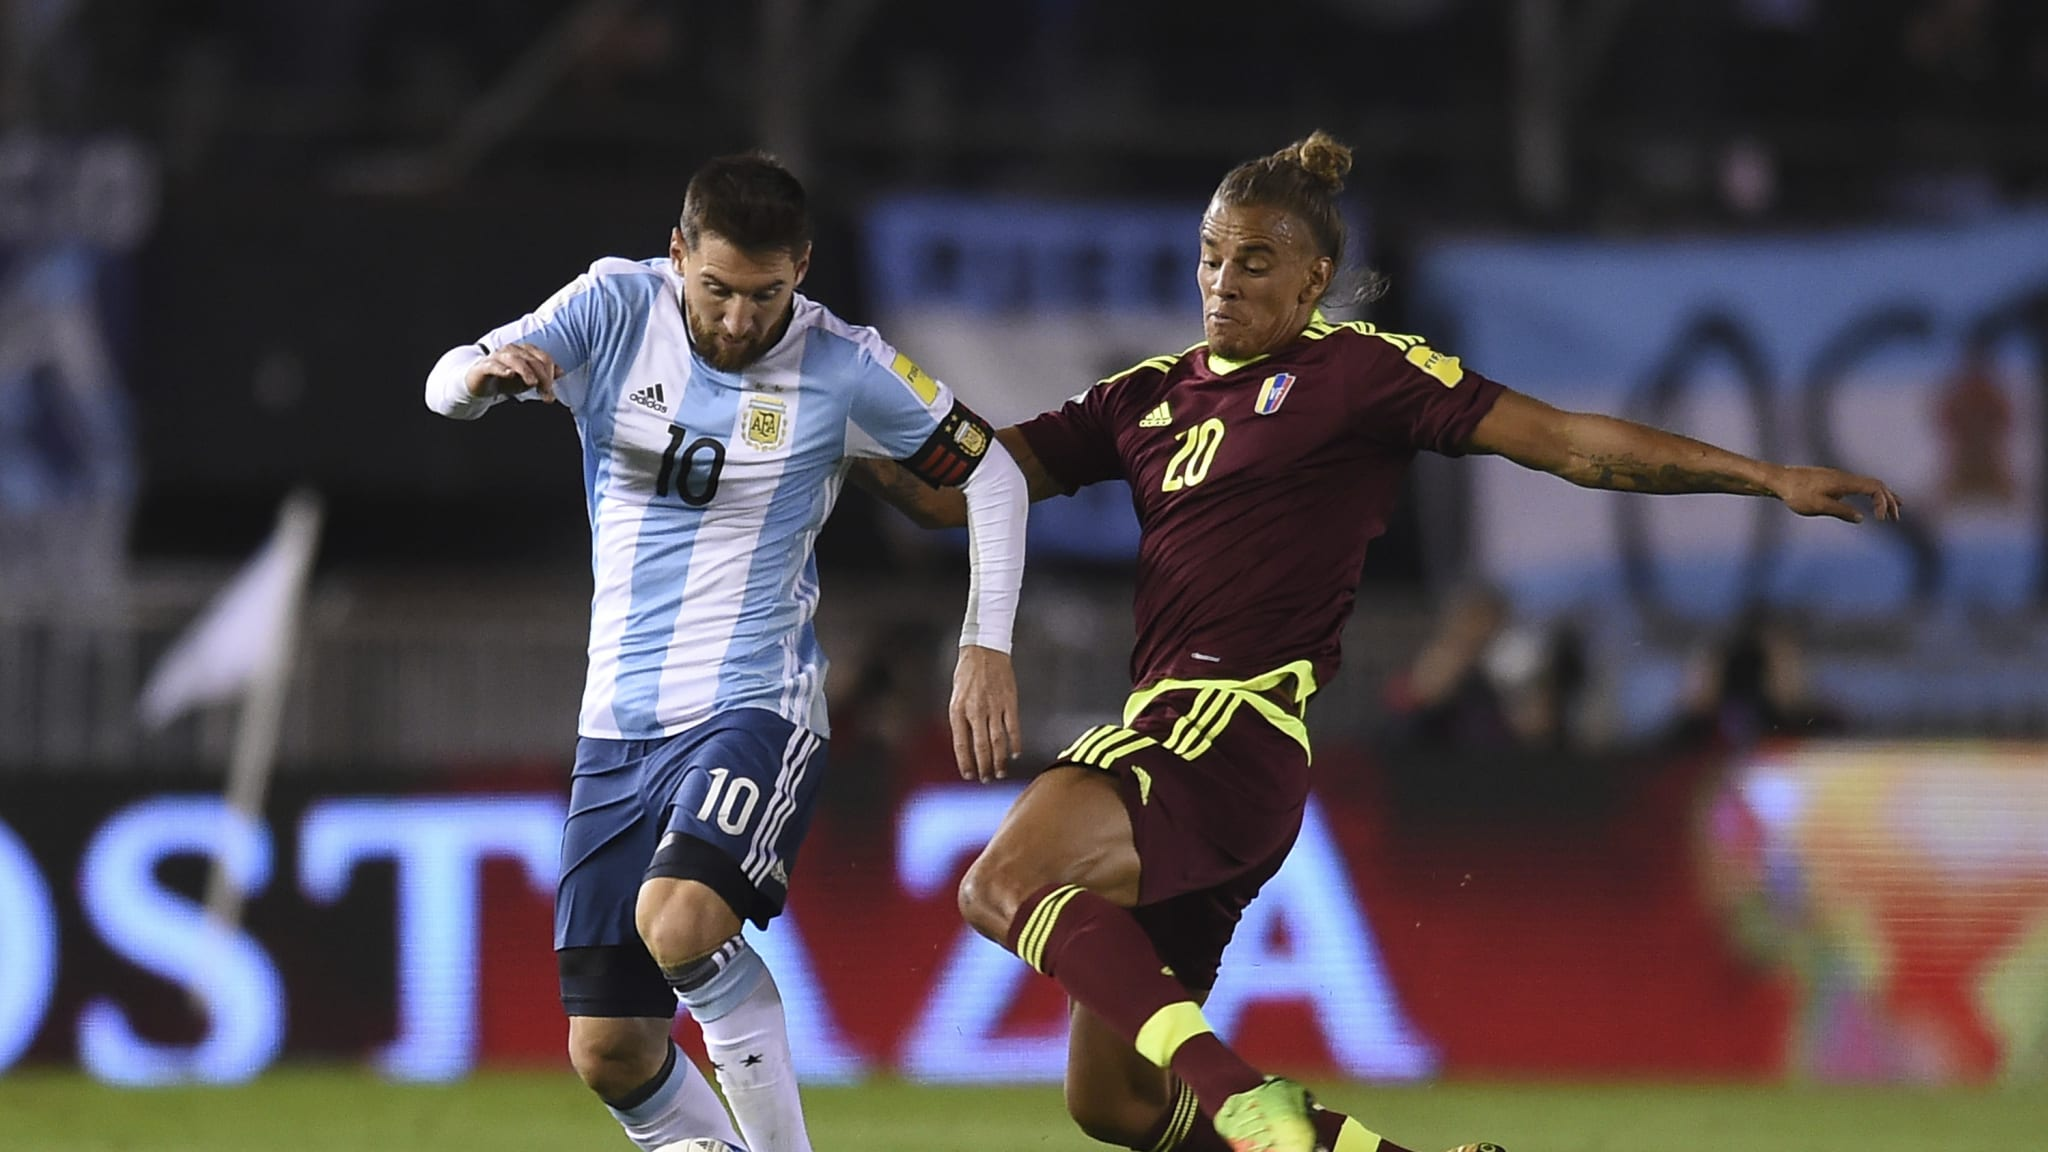 Lionel Messi of Argentina fights for ball with Rolf Feltscher of Venezuela